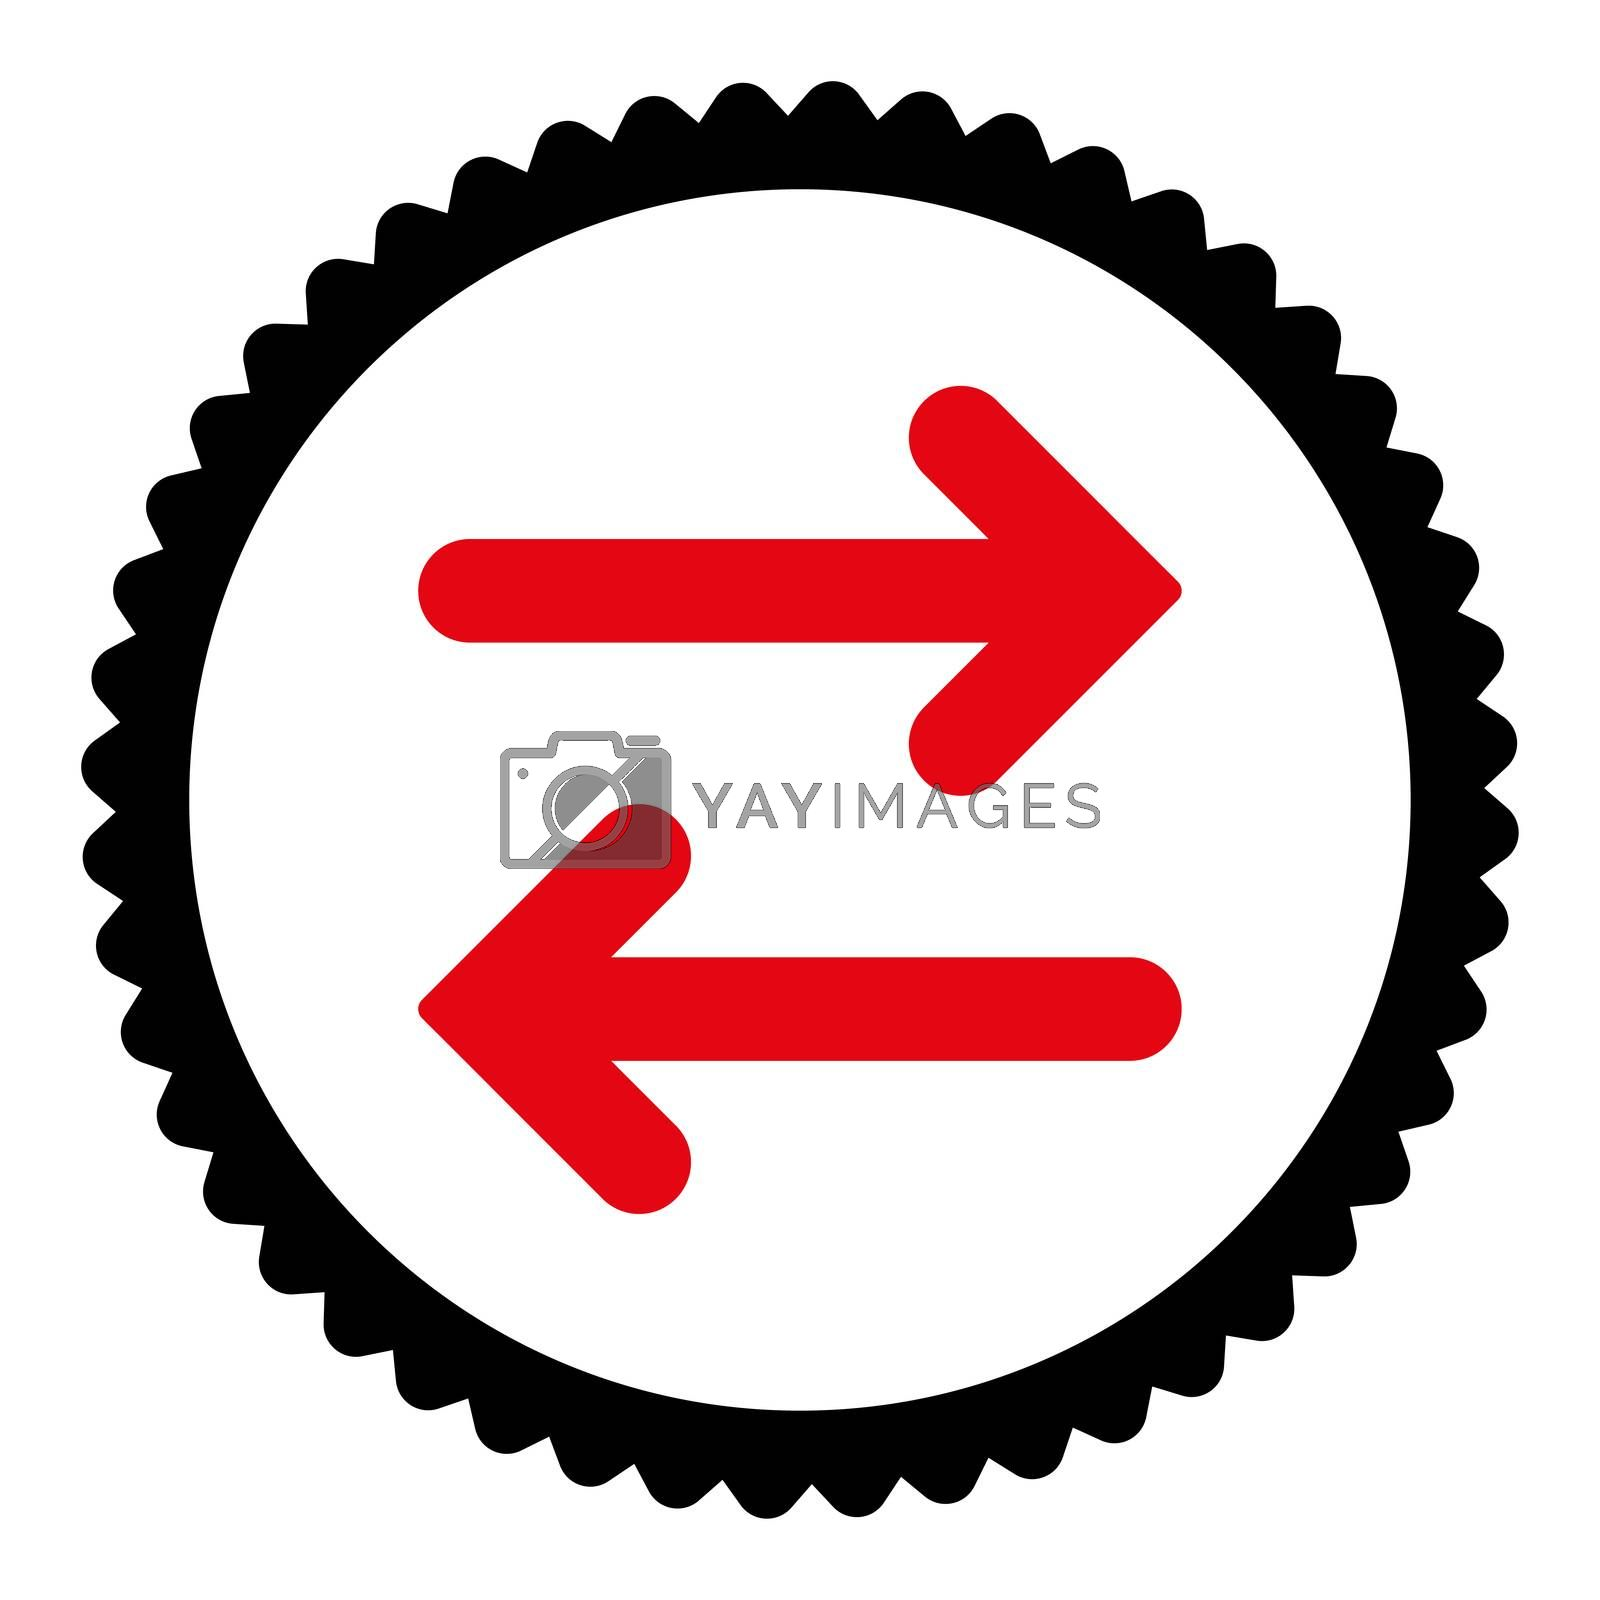 Flip Horizontal flat intensive red and black colors round stamp icon by Aha-Soft